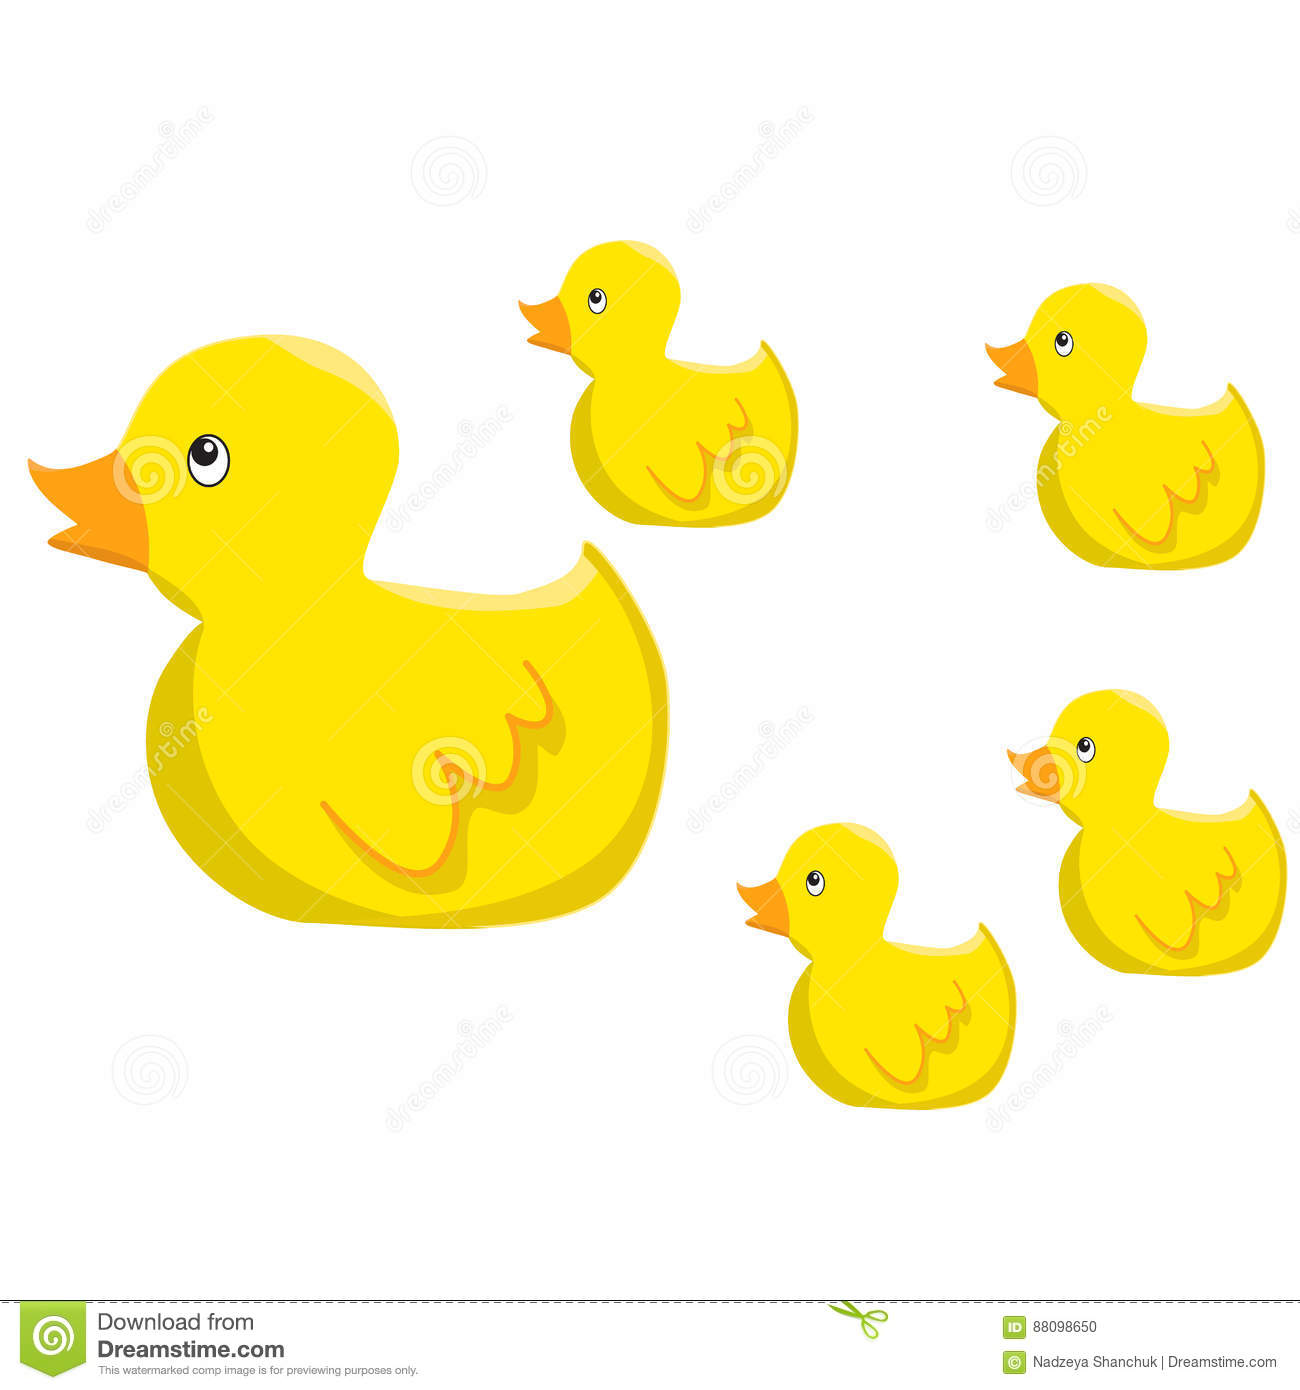 Ducks Group Stock Illustrations 363 Ducks Group Stock Illustrations Vectors Clipart Dreamstime